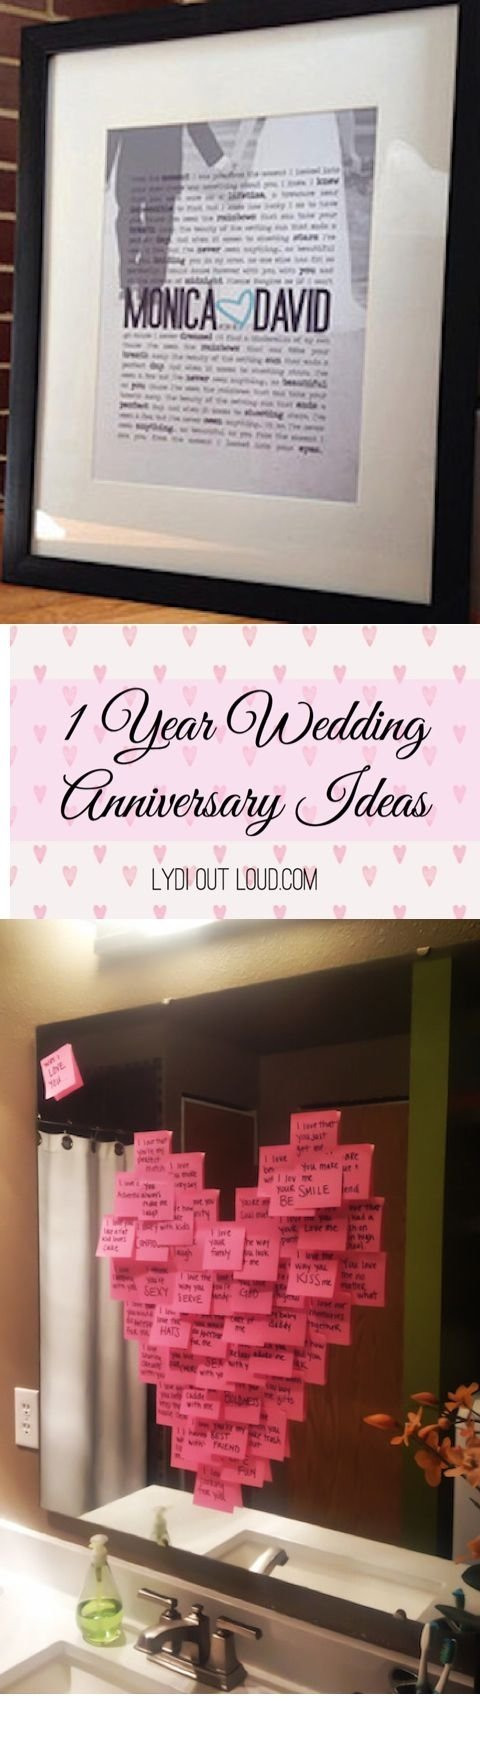 10 Great Ideas For 1 Year Anniversary 1 year anniversary gift ideas paper gifts wedding anniversary and 2 2020